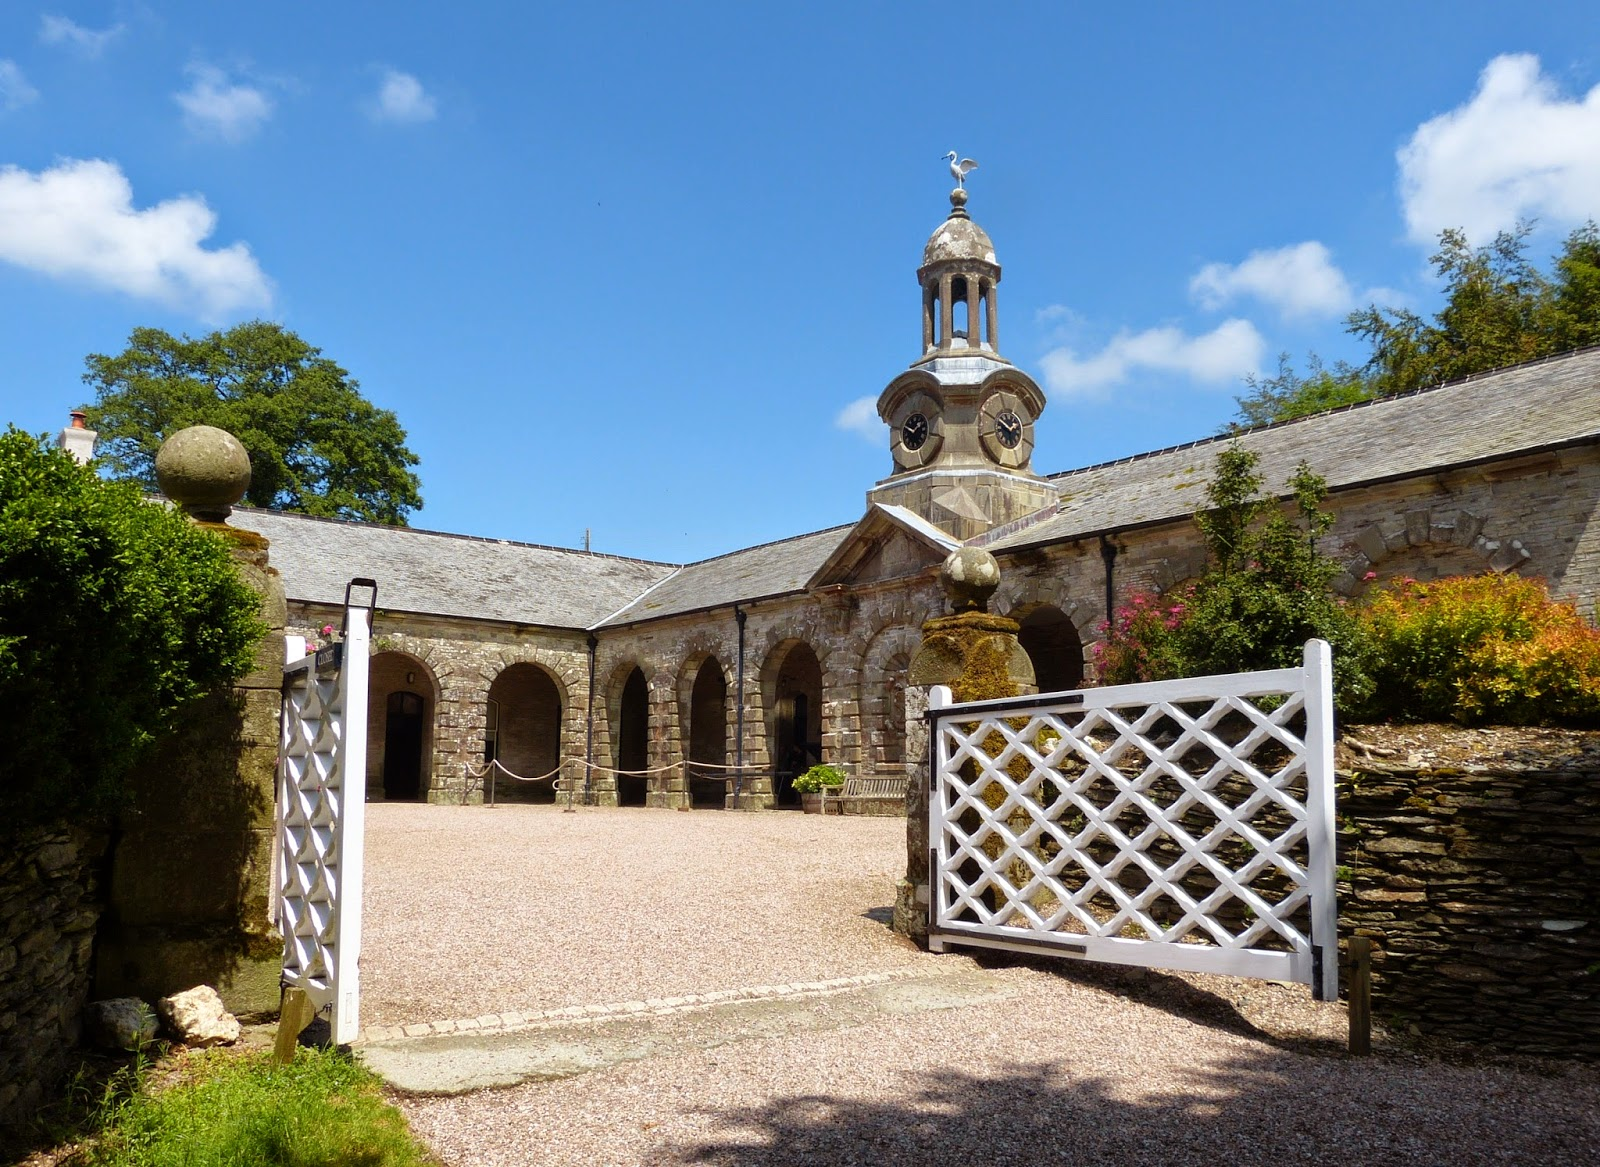 The stables, Arlington Court